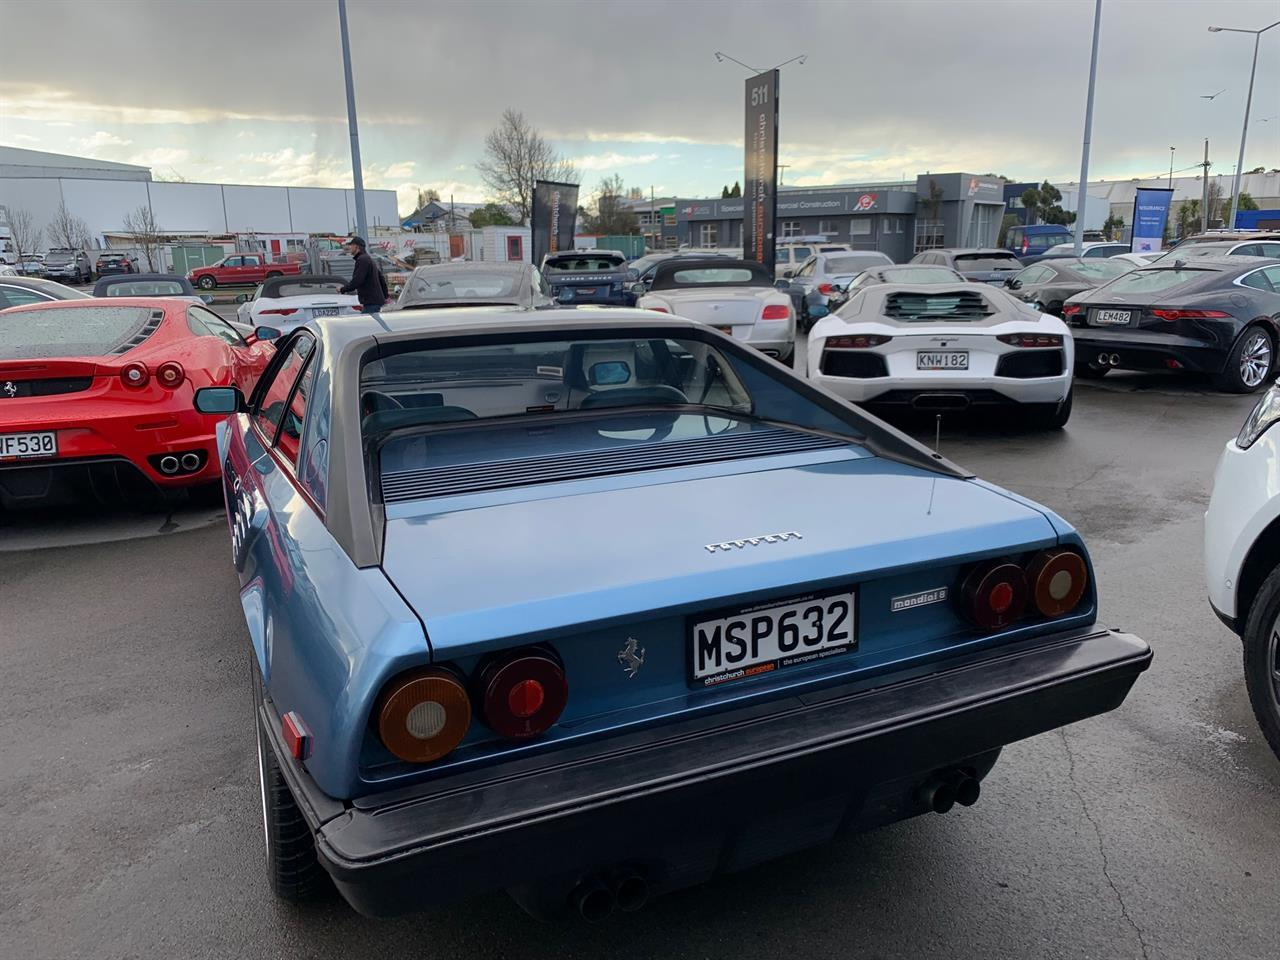 image-3, 1982 Ferrari Mondial 8 4 Seater Coupe at Christchurch